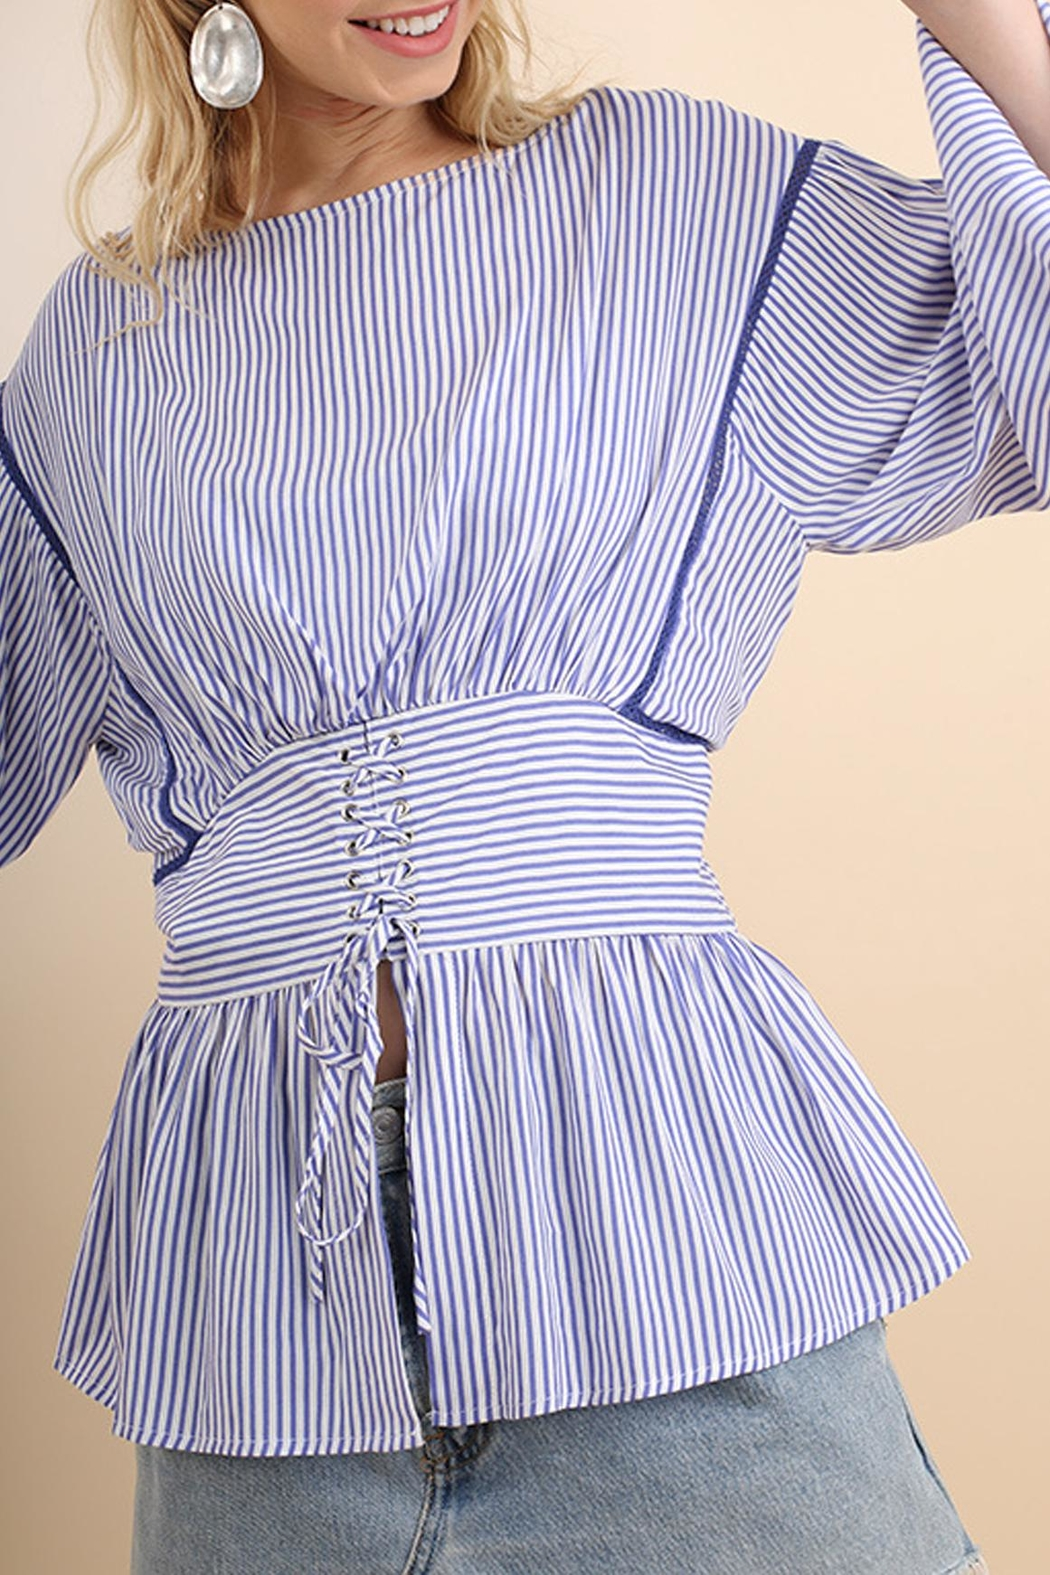 Umgee USA Striped Belted Top - Main Image